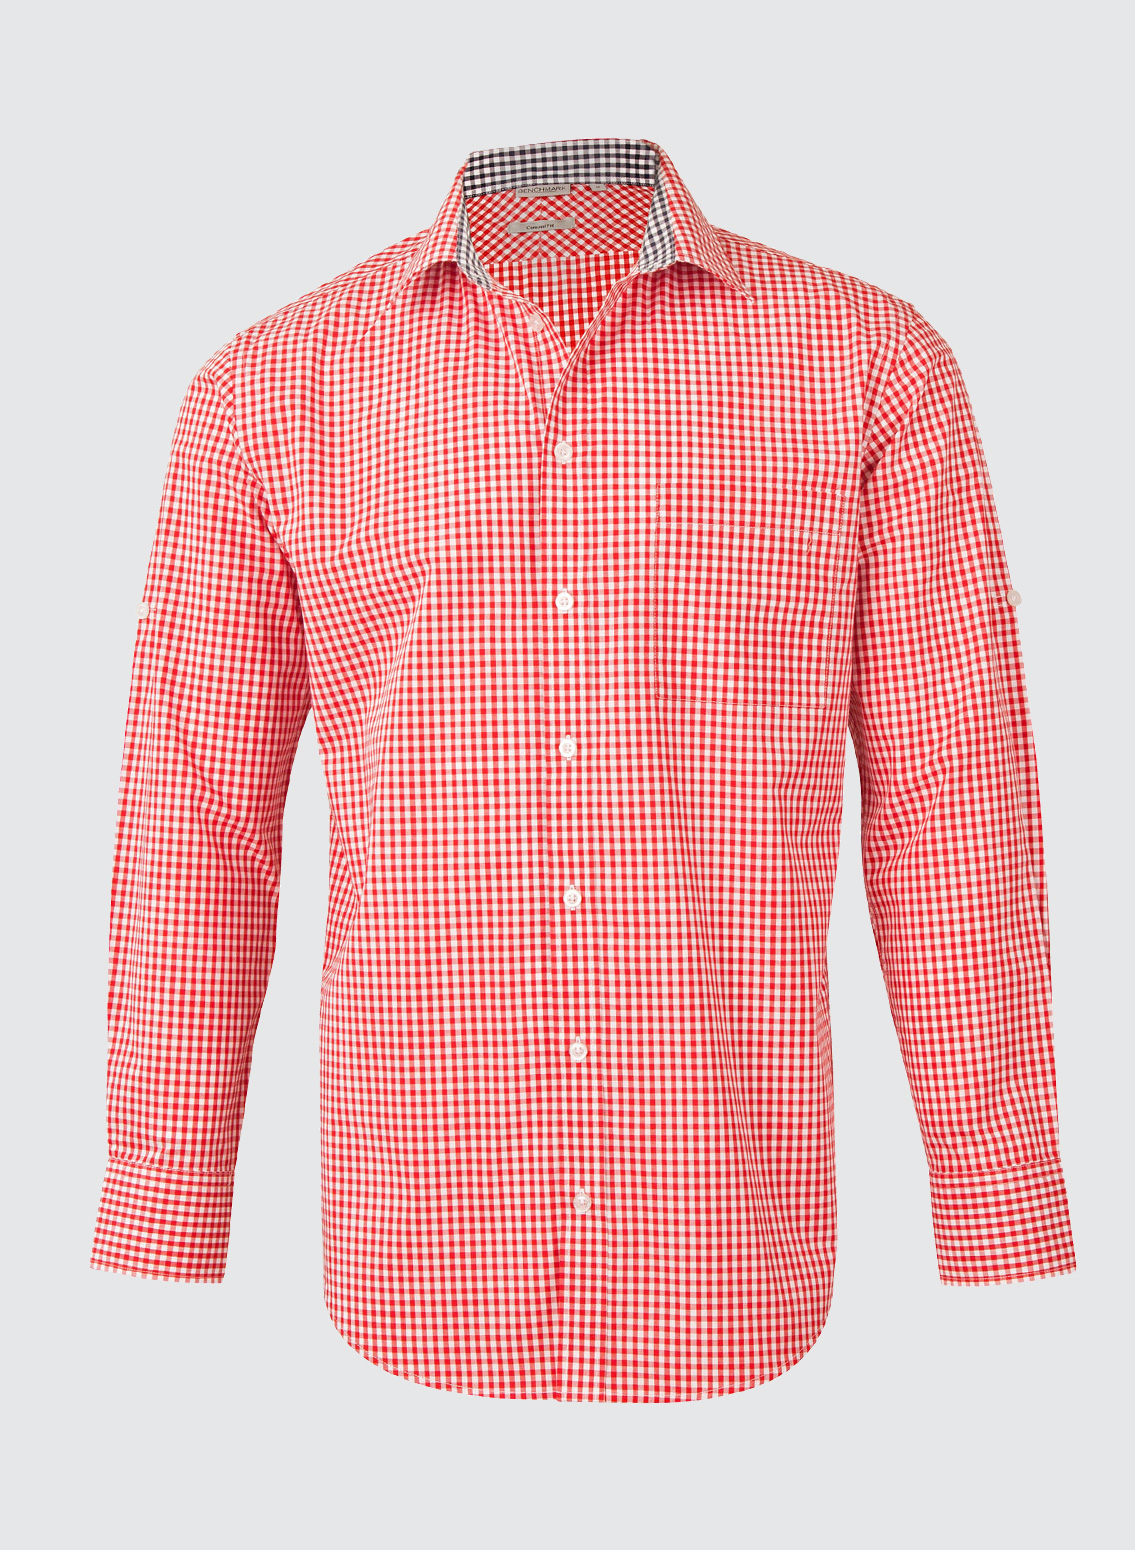 M7330l men s gingham check long sleeve shirt with roll up for Men s roll tab sleeve shirts